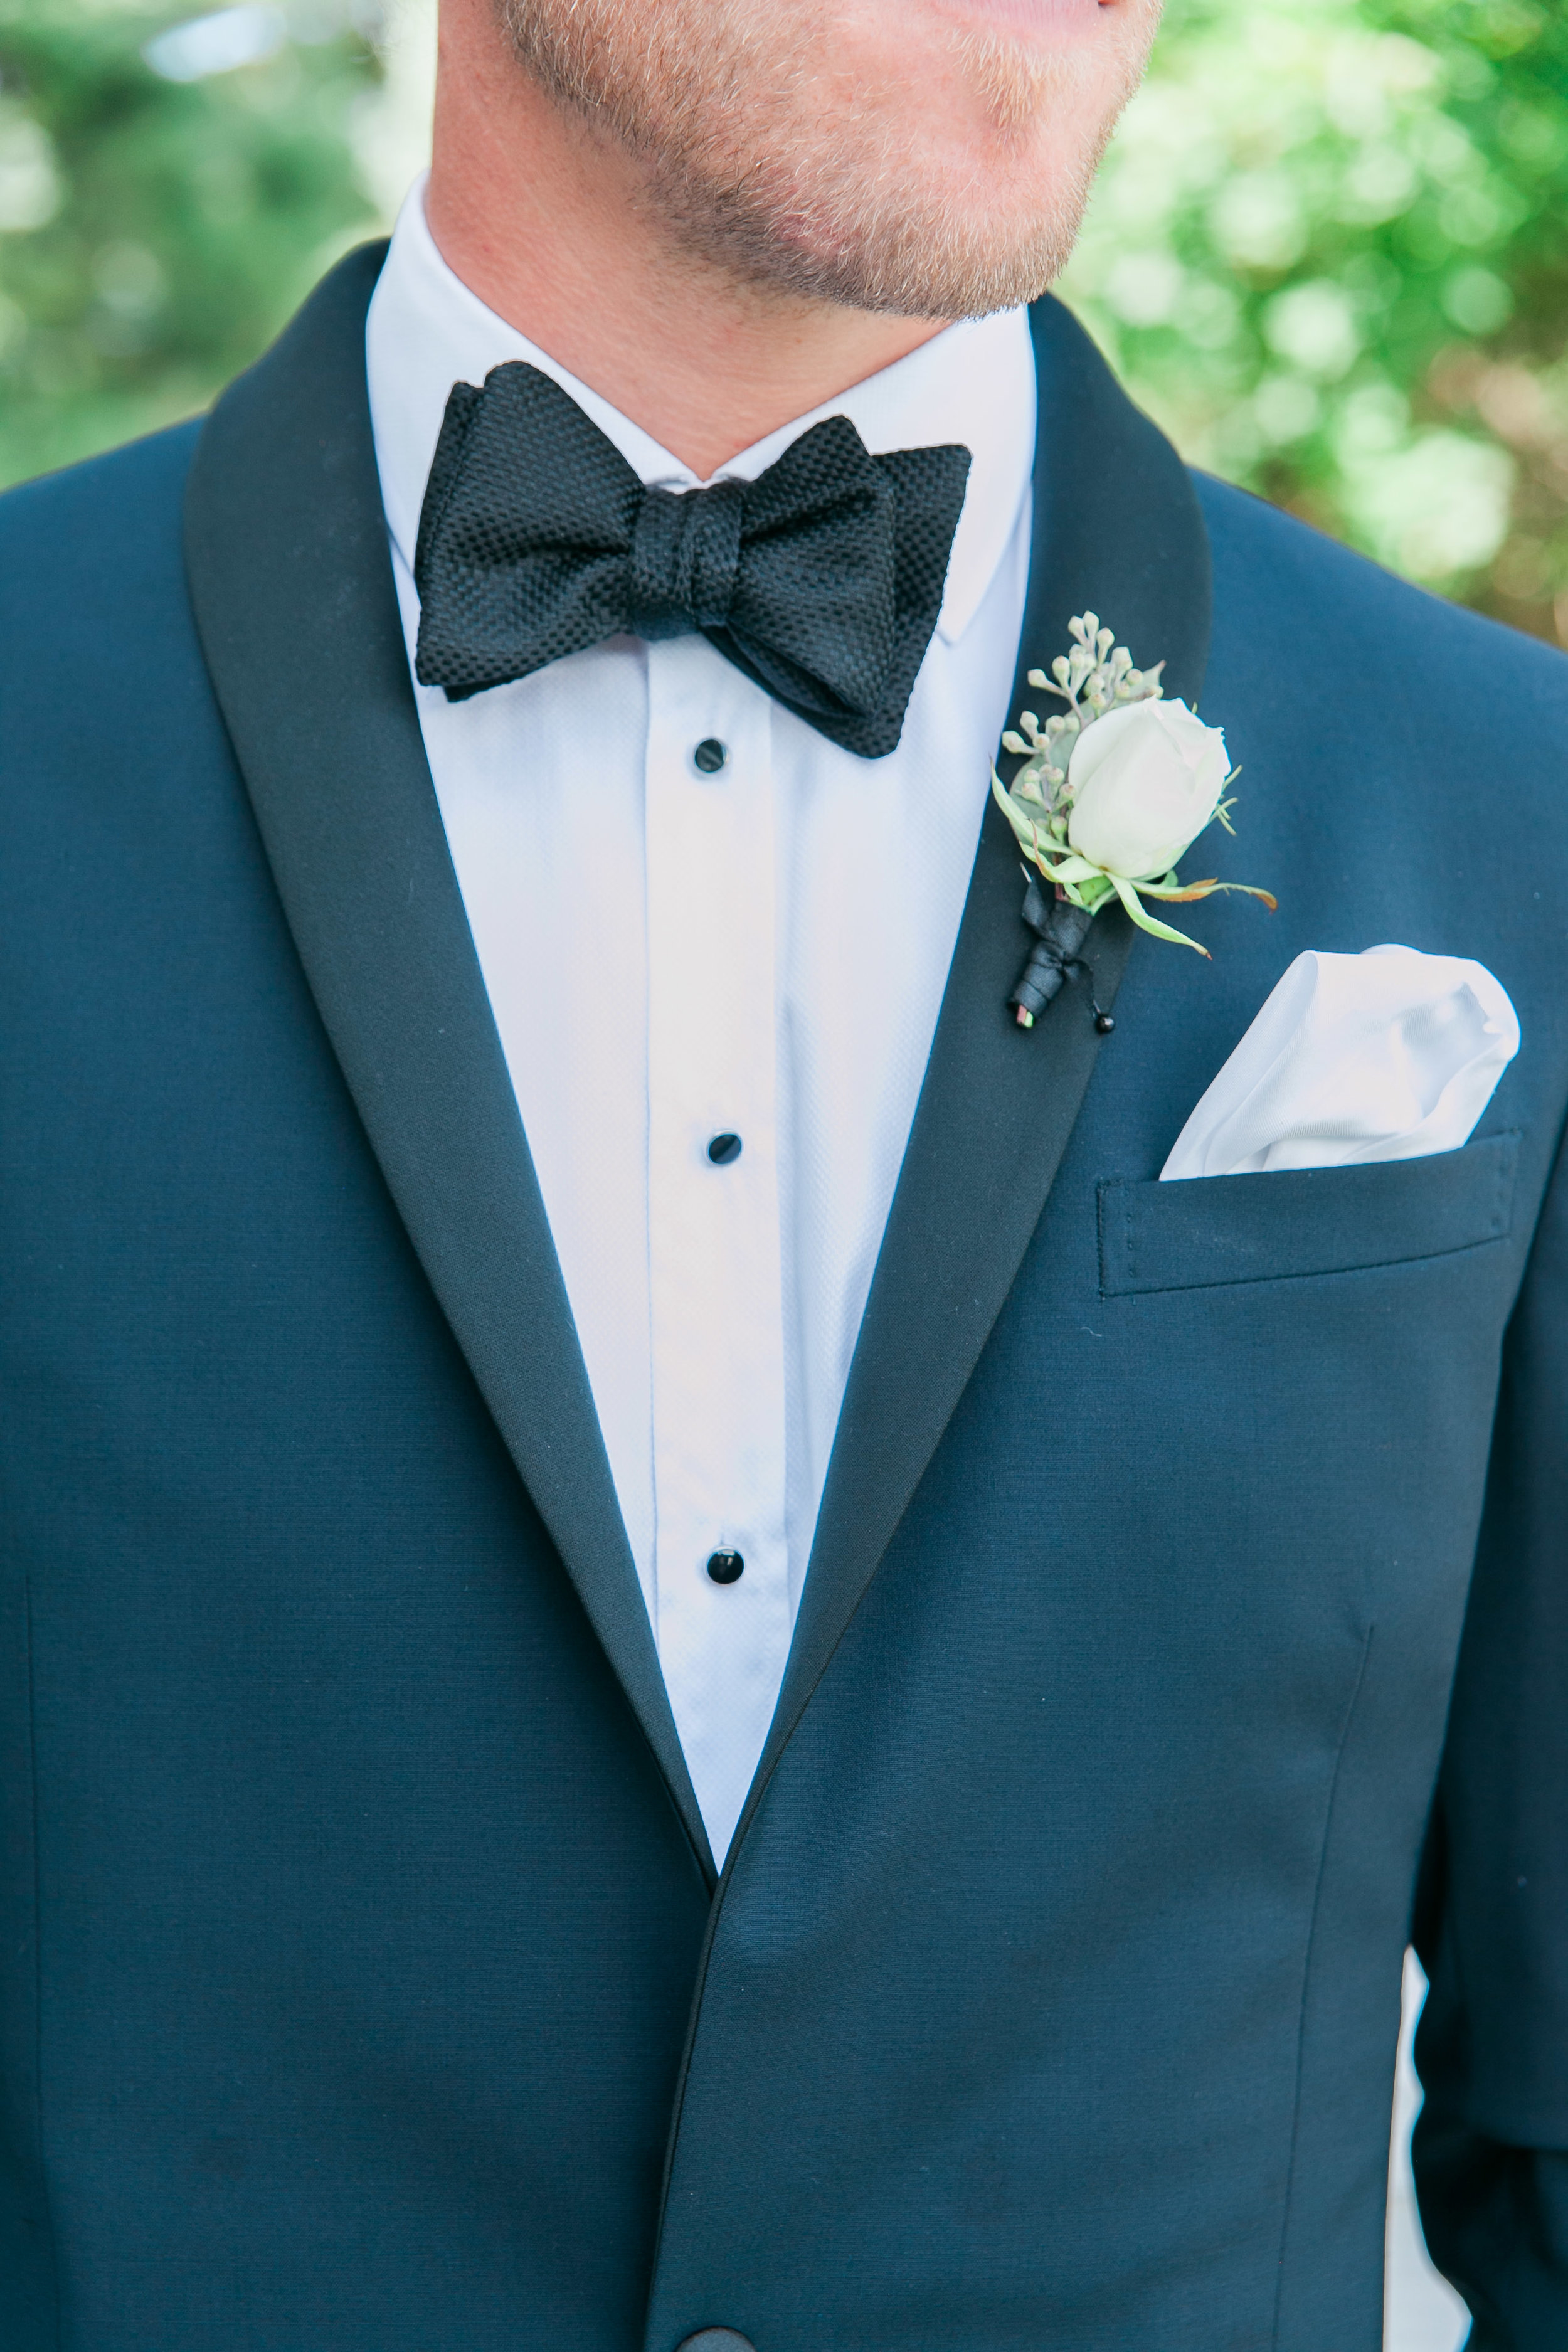 Detail photo of groom's suit